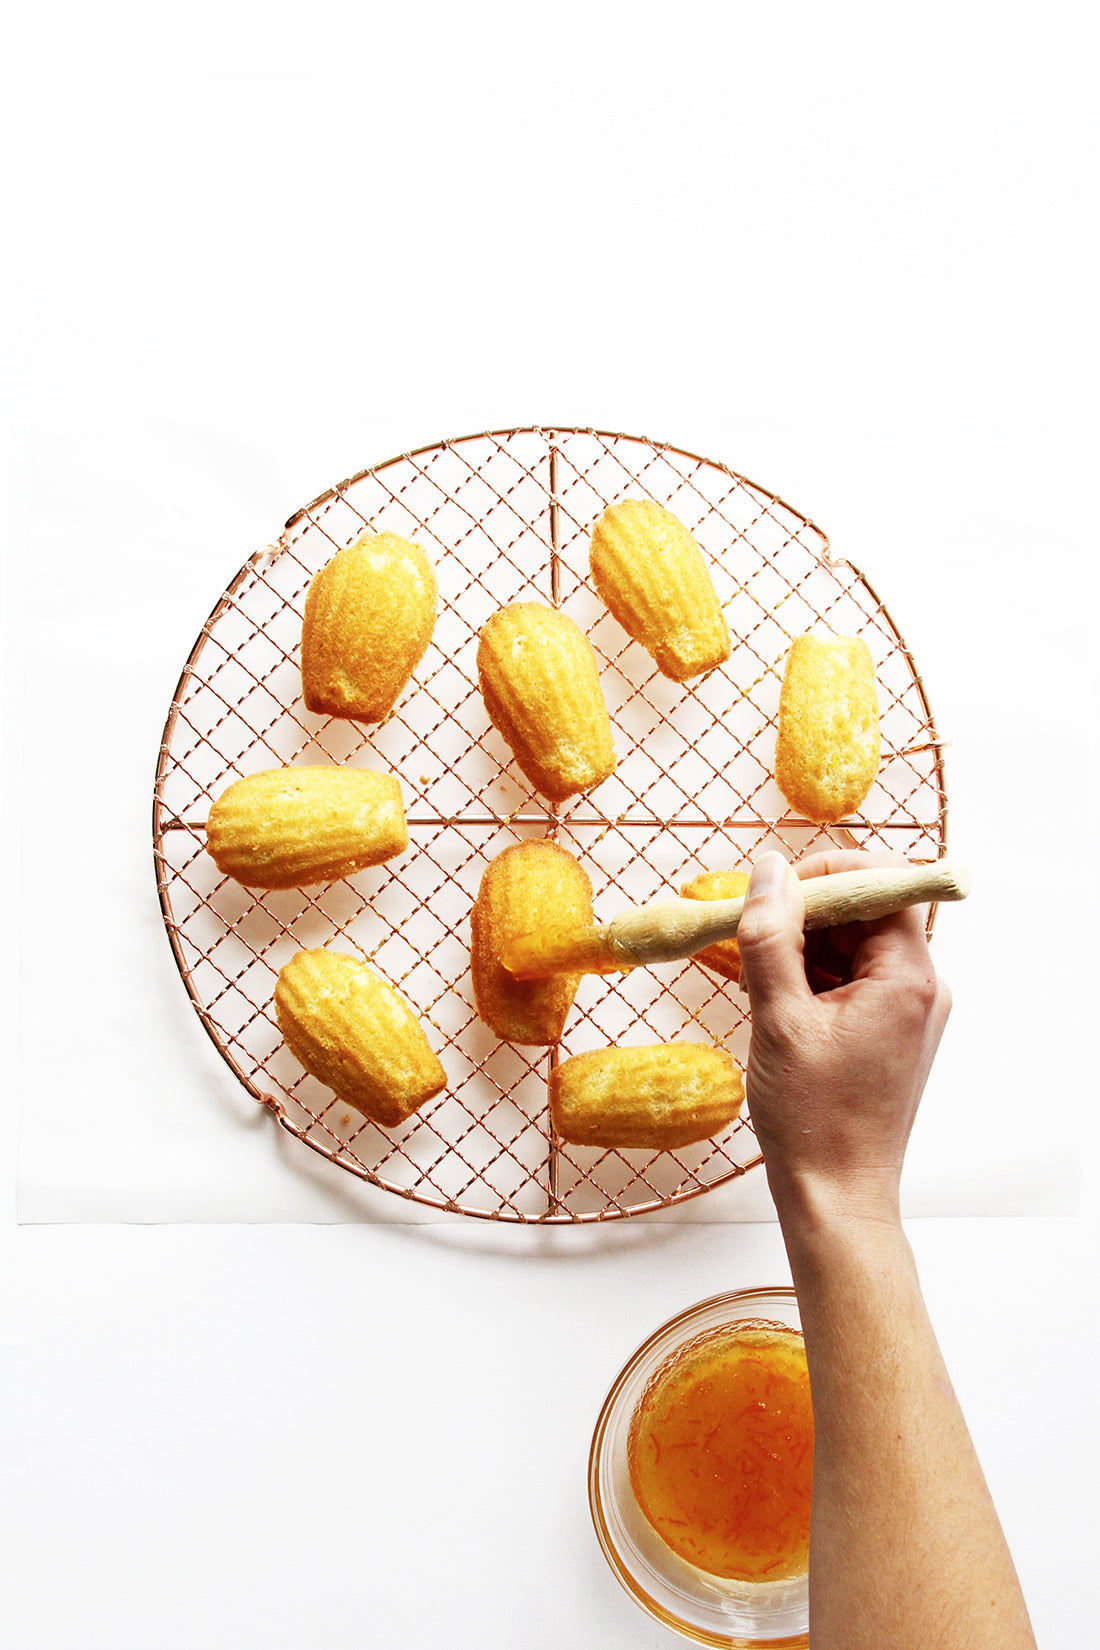 Image of nine Miss Jones Baking Co Marmalade Madeleines on a baking rack being glazed with orange marmalade by a hand